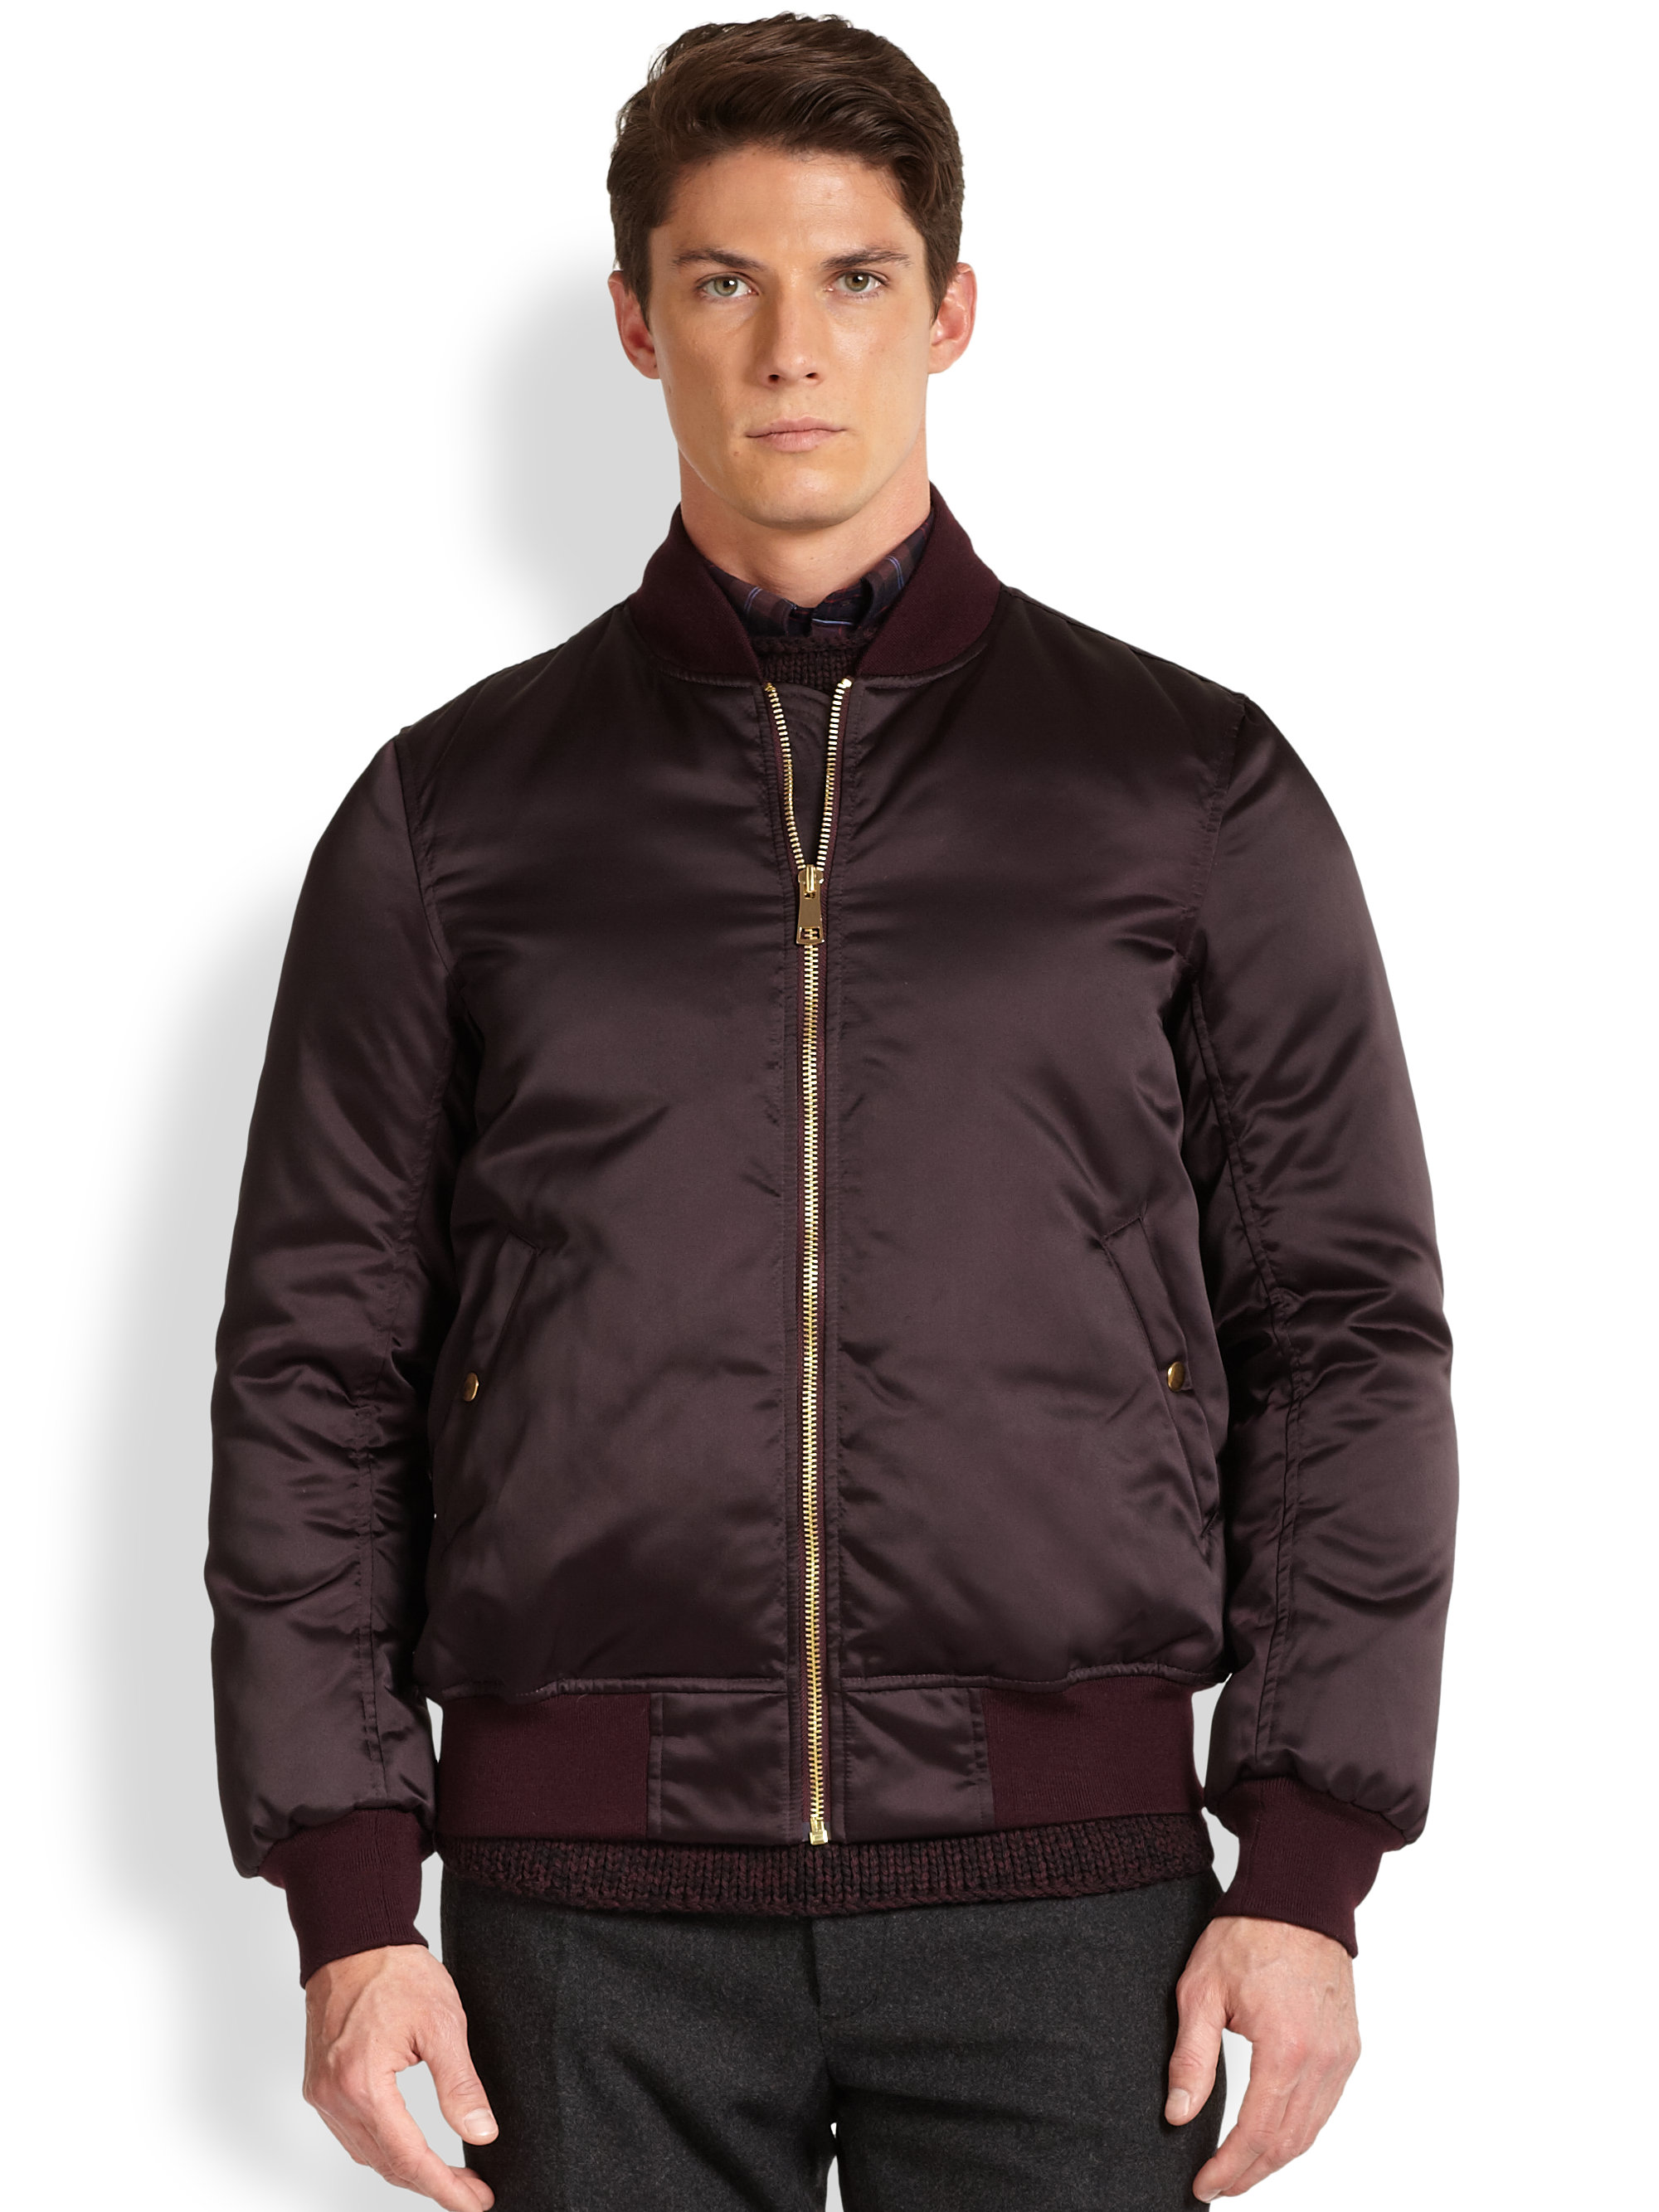 Nylon Bomber Jacket Mens - Coat Nj